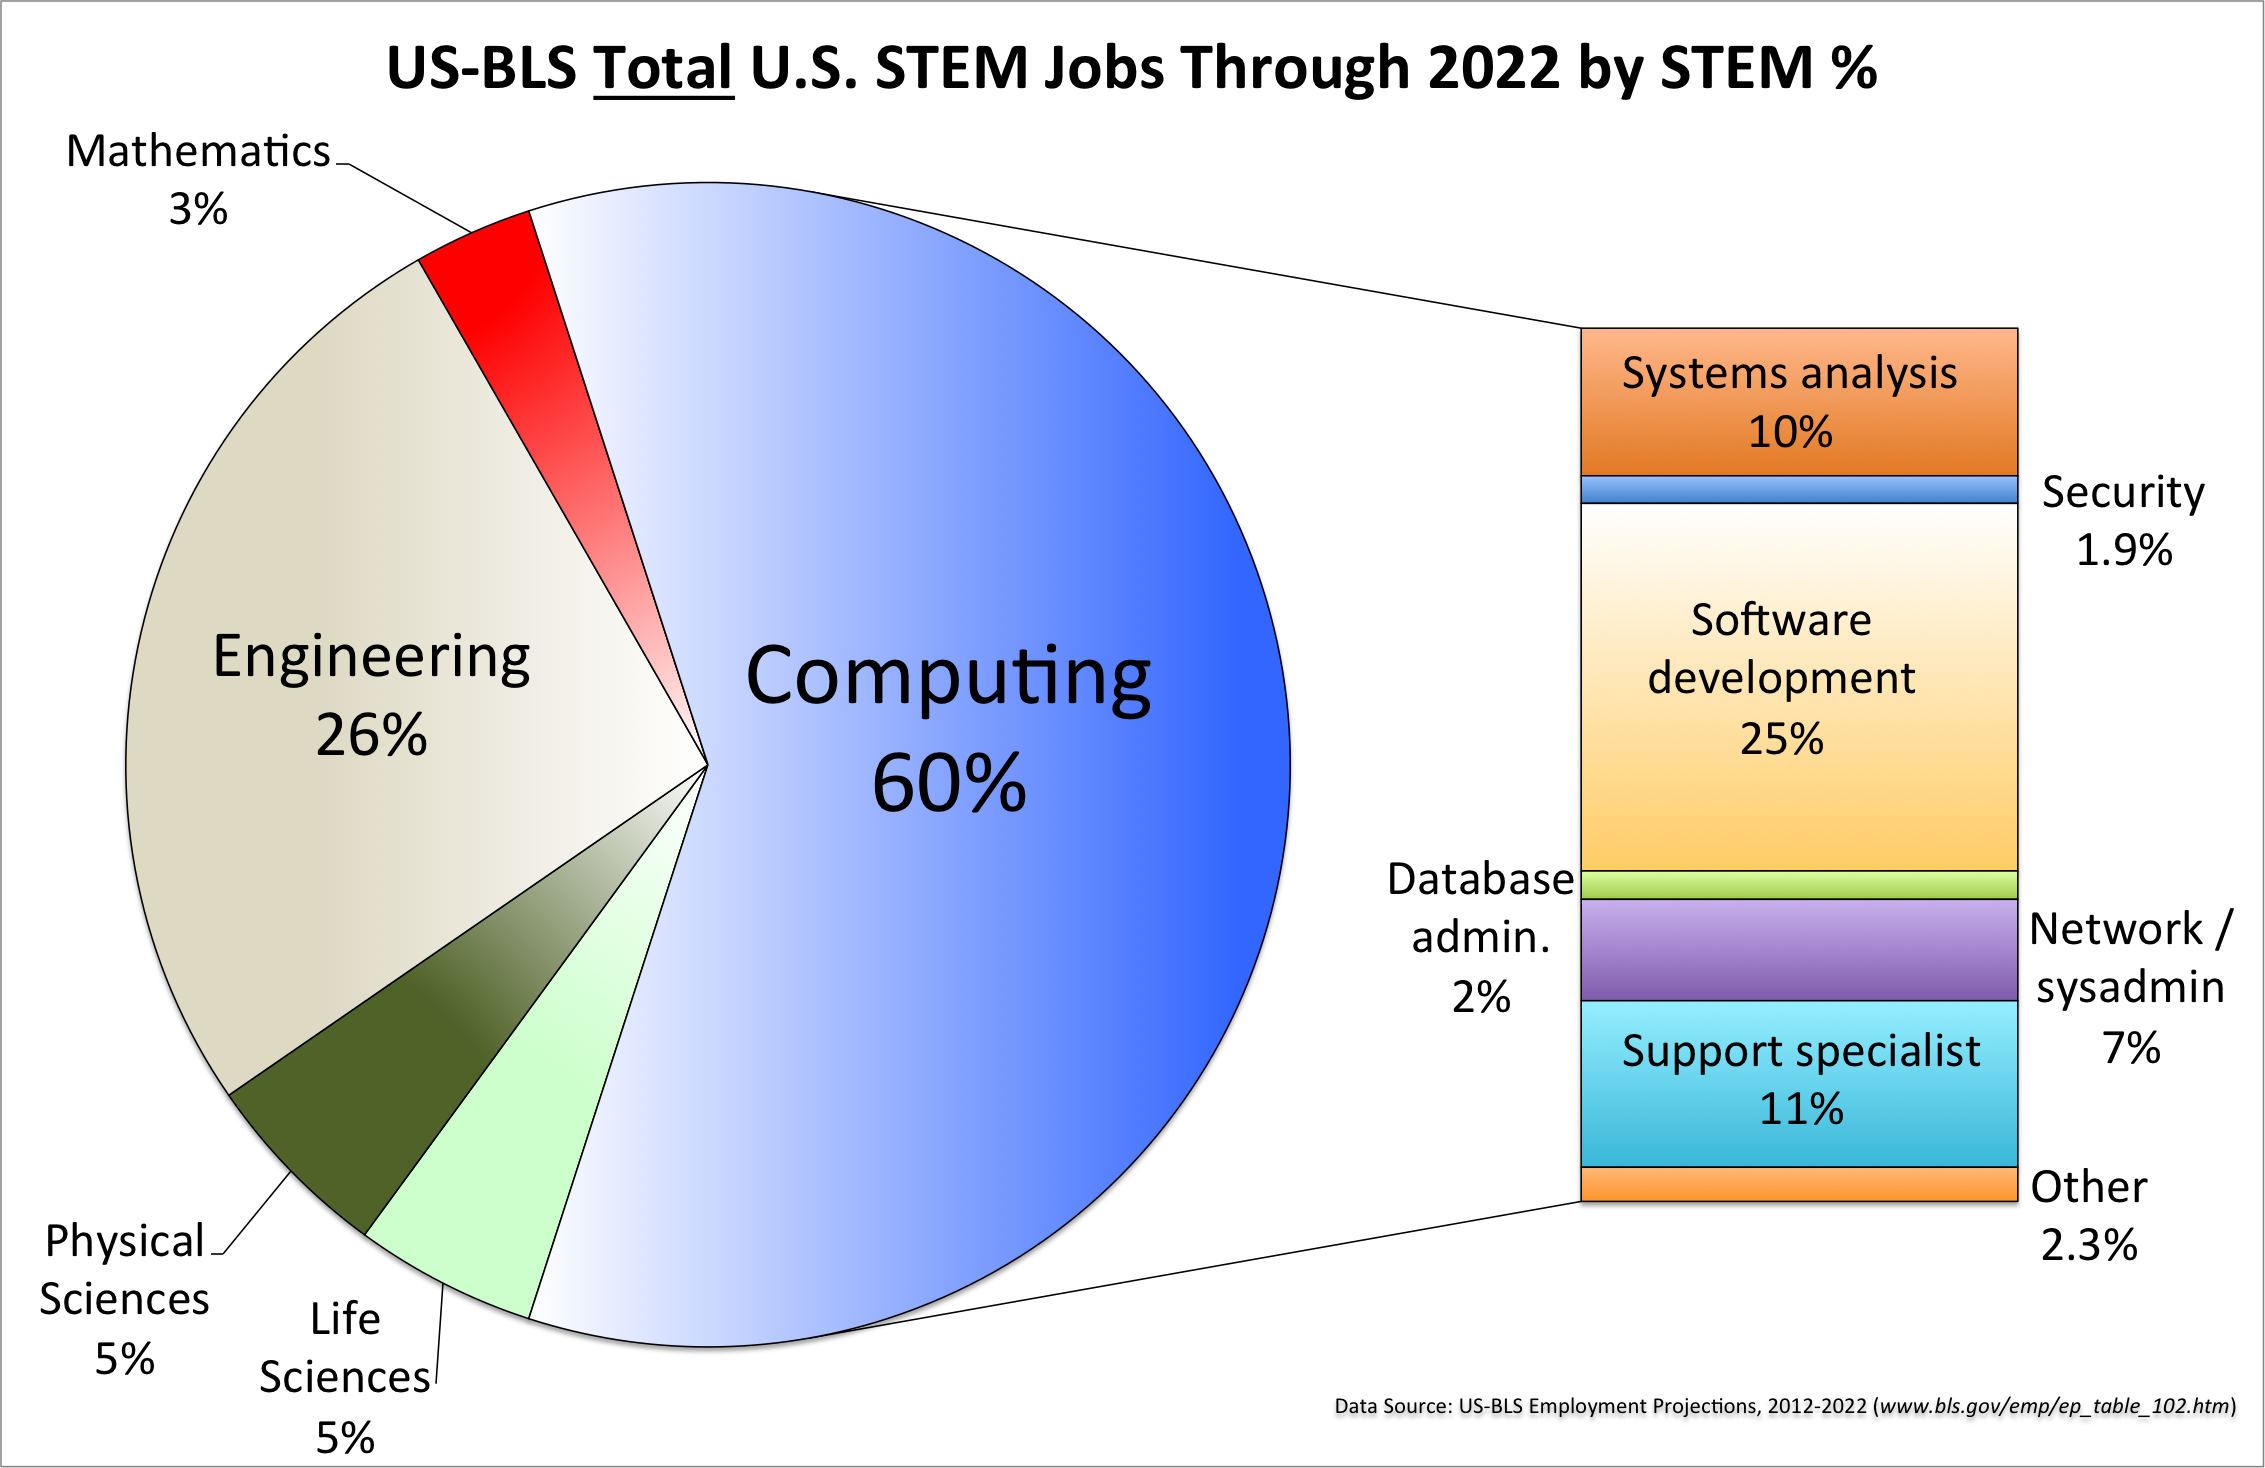 The U.S. Bureau of Labor predicts that between now and 2022,               60% of the total STEM jobs will be computing jobs